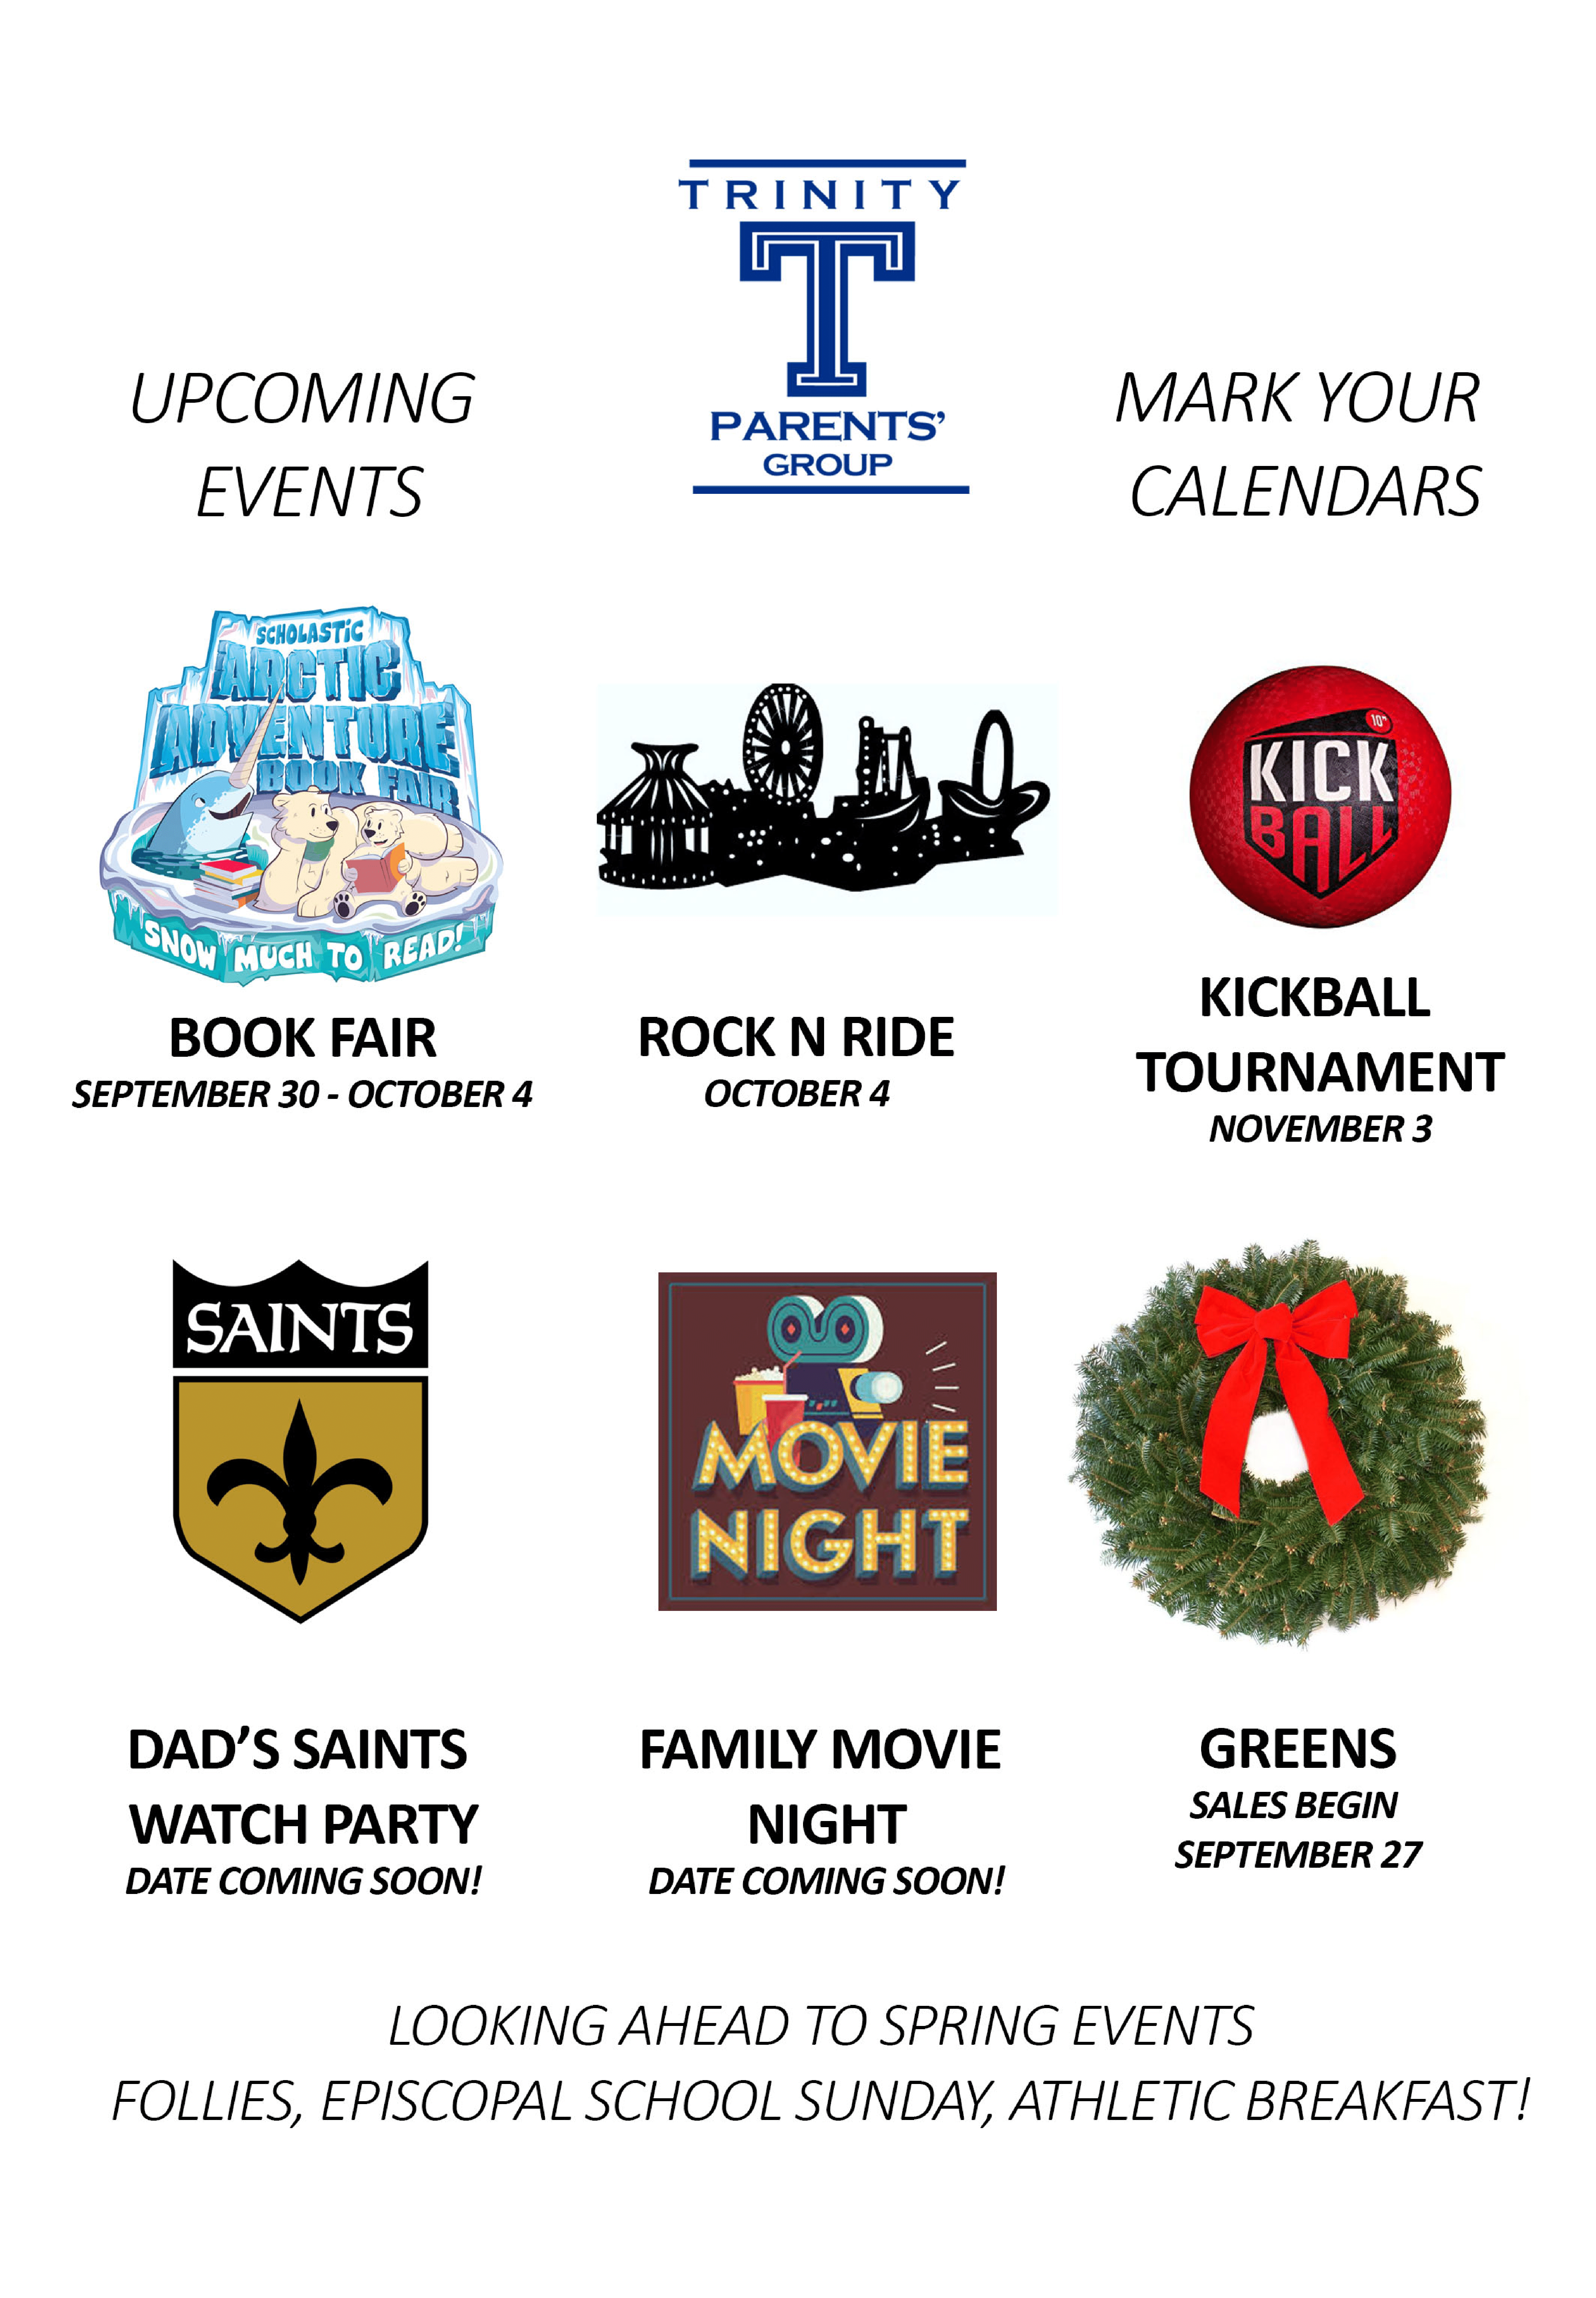 tpg-fall-events-1.png